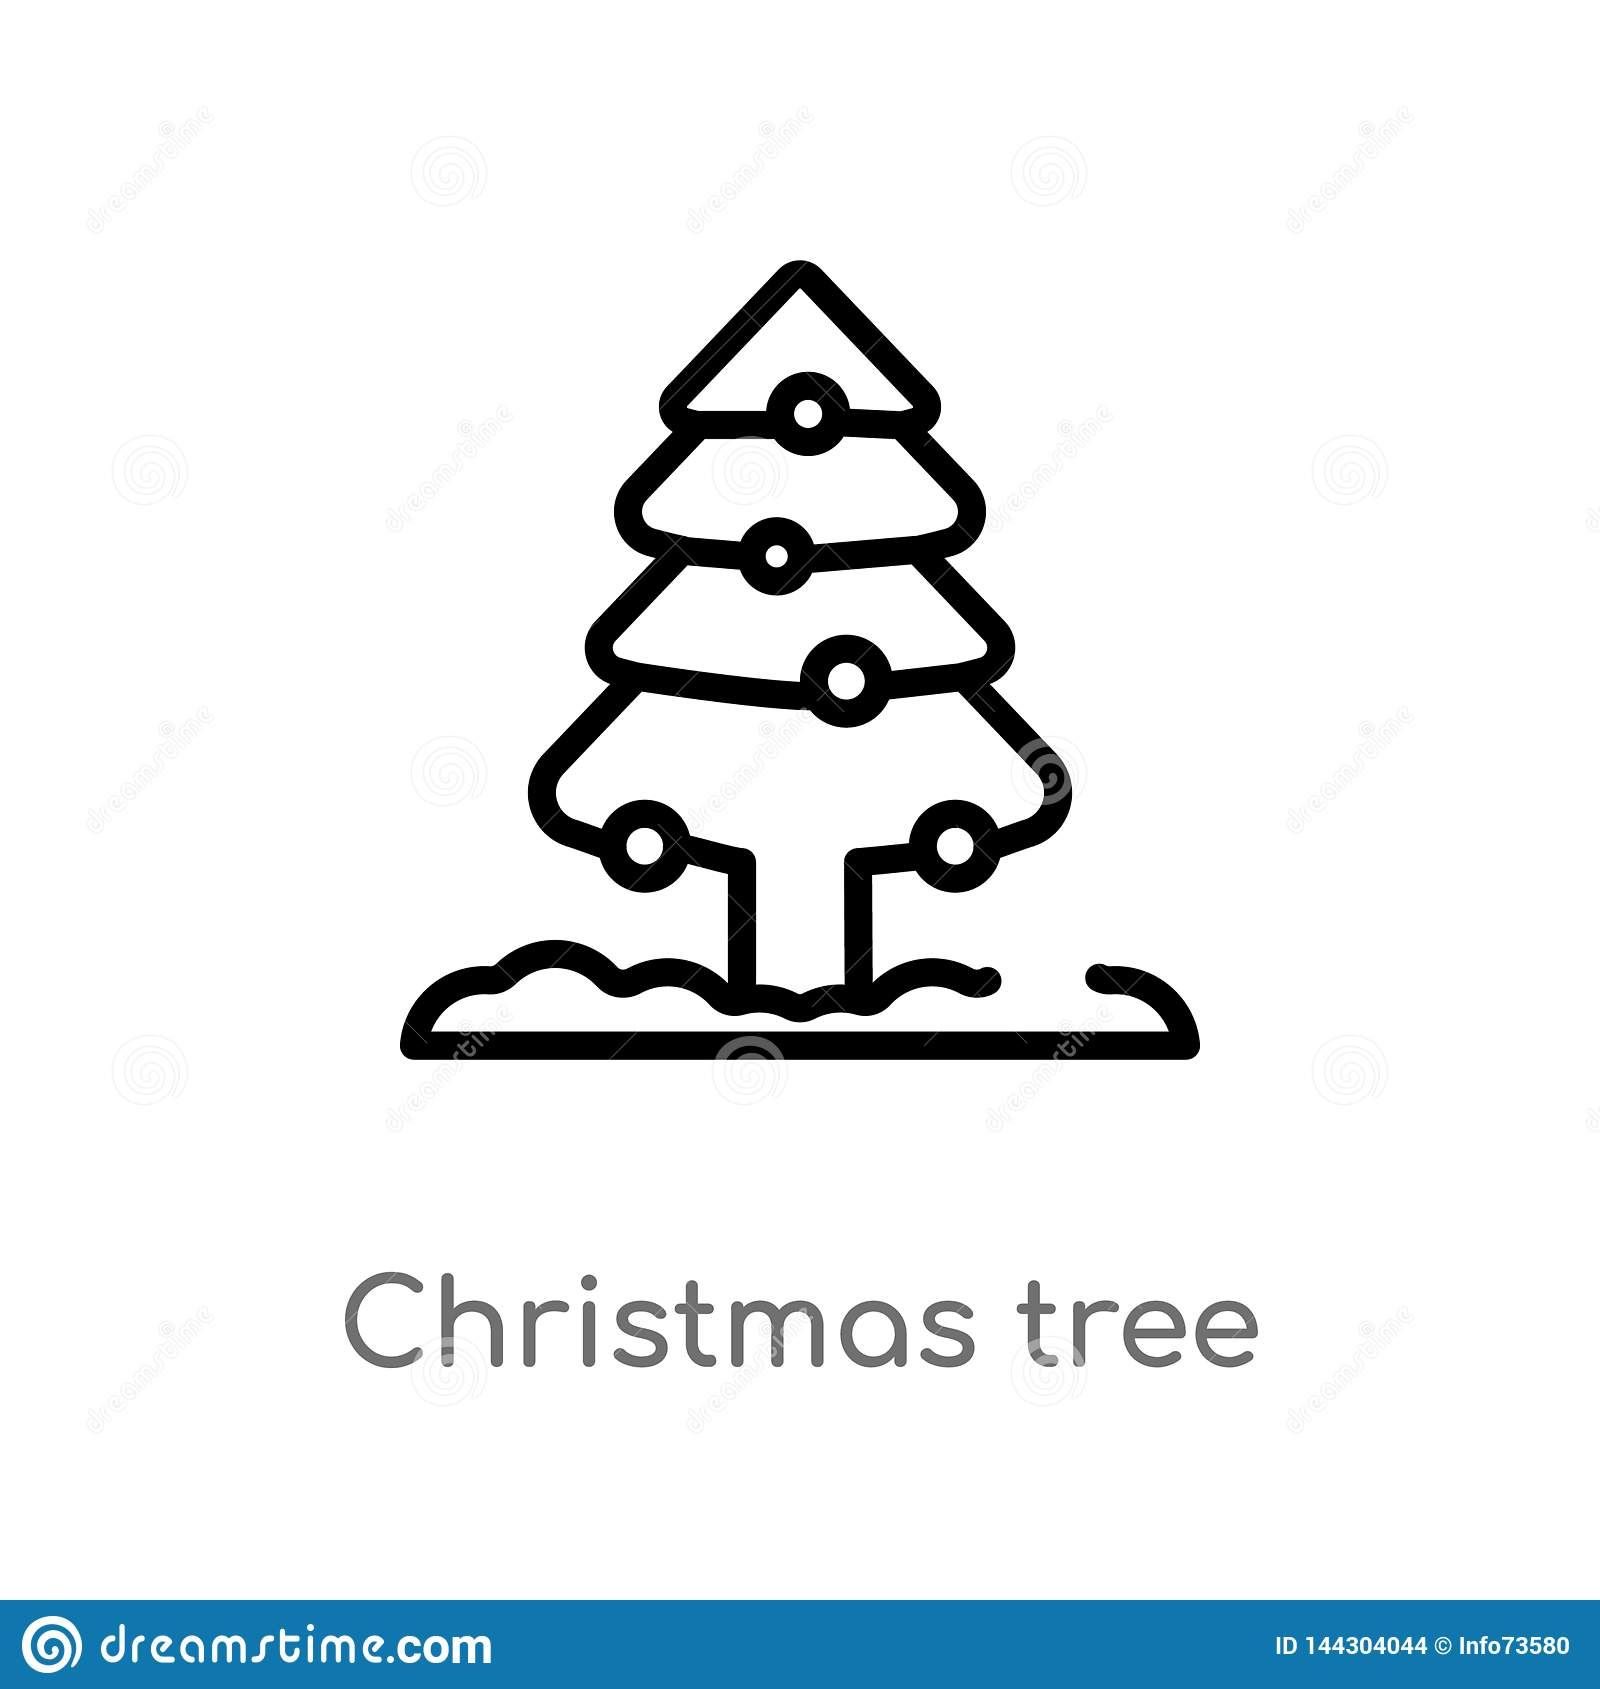 Outline Christmas Tree Vector Icon Isolated Black Simple Line